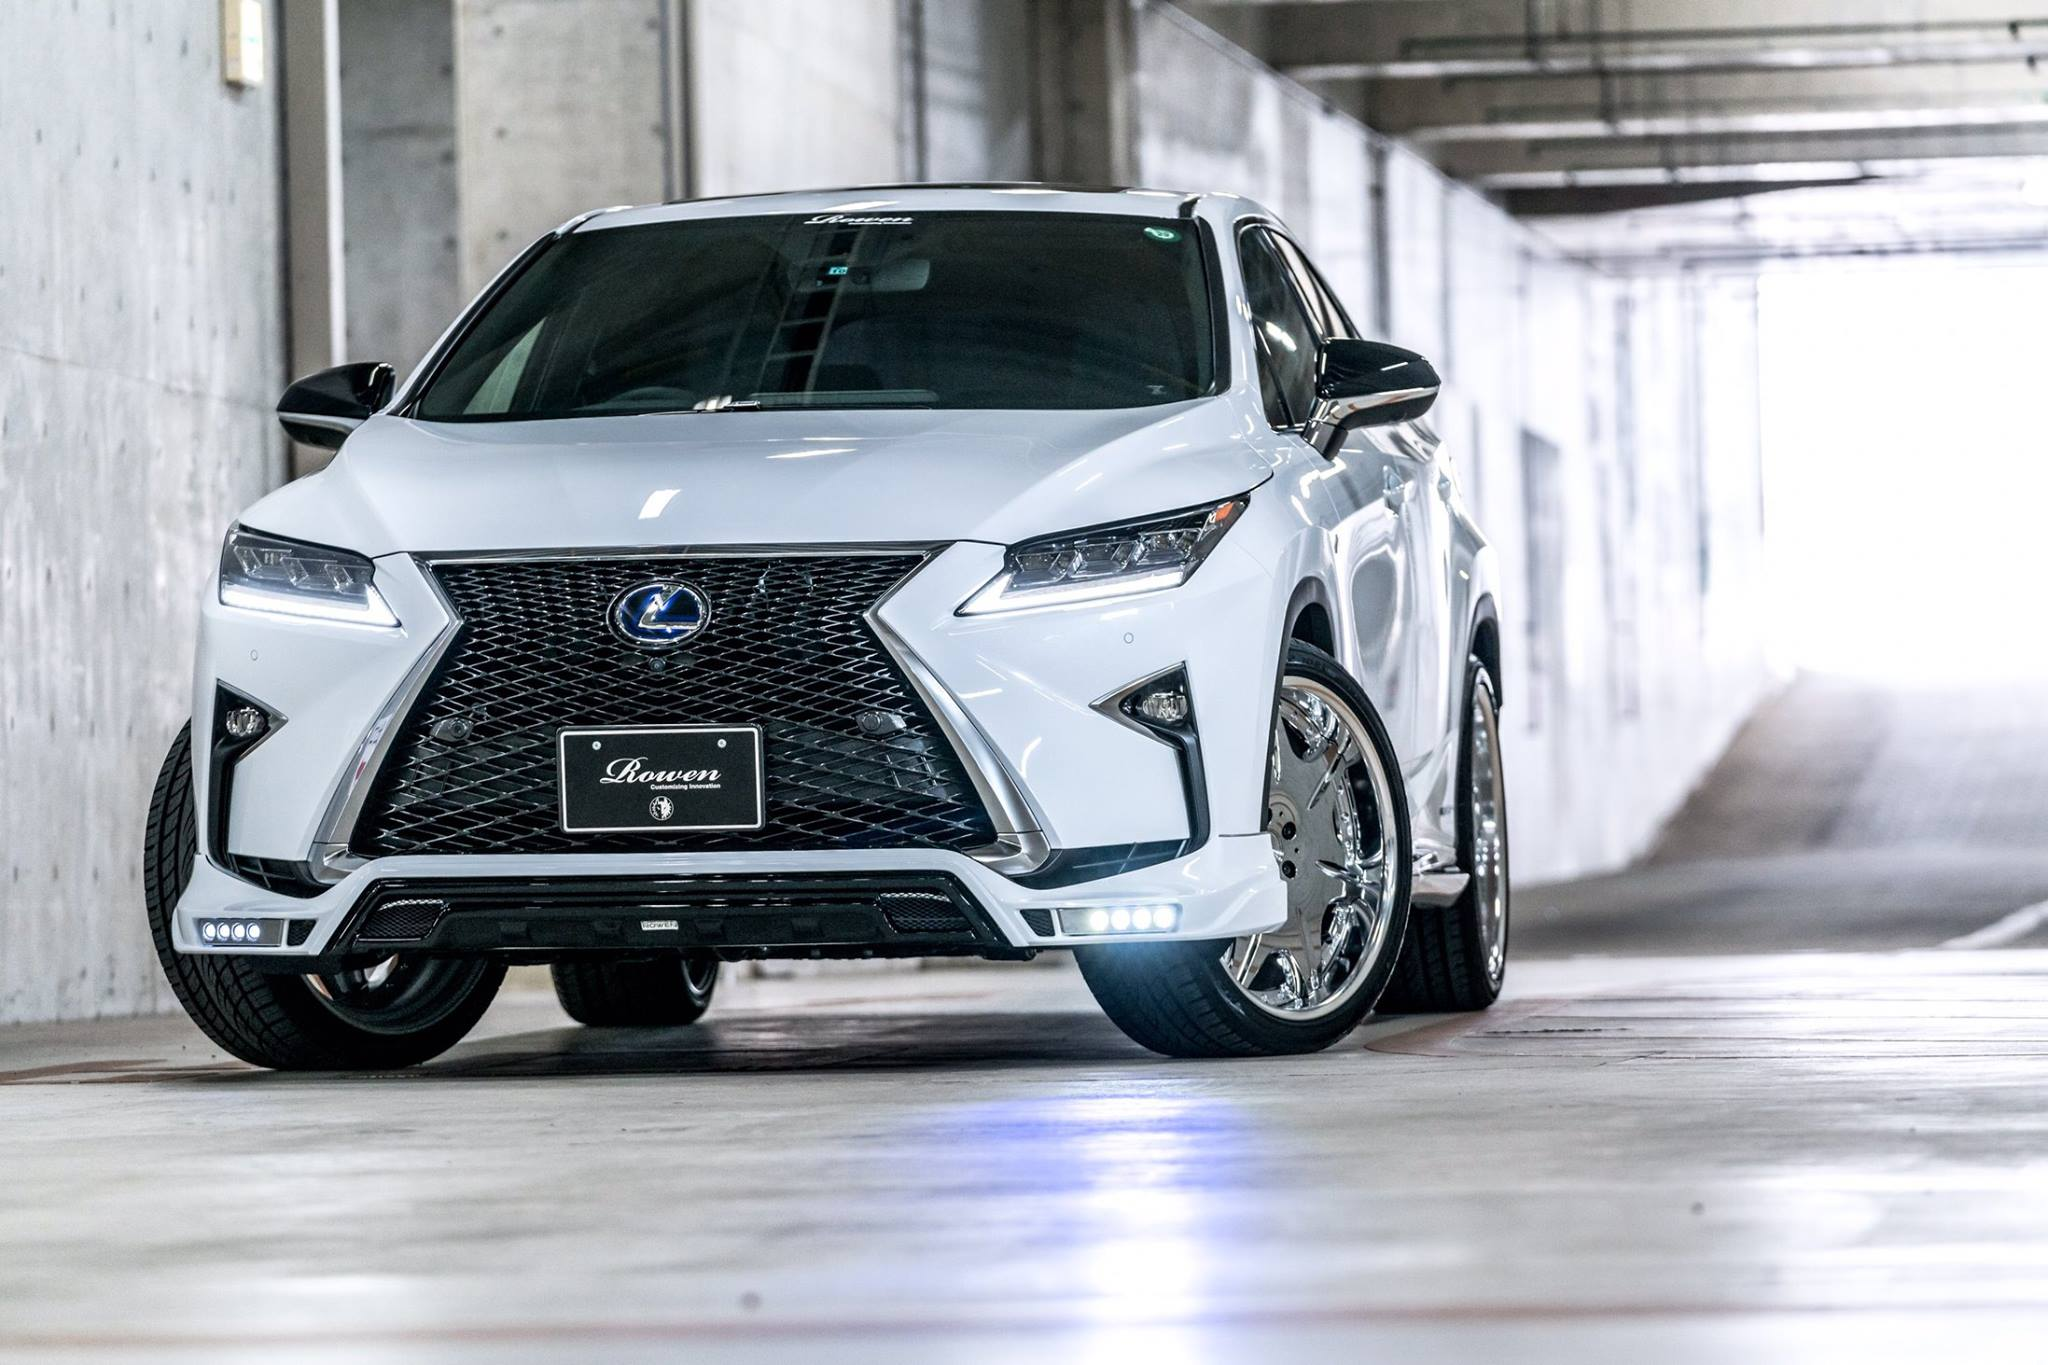 Lexus Rx F Sport With Rowen Body Kit Has Quad Exhaust Autoevolution